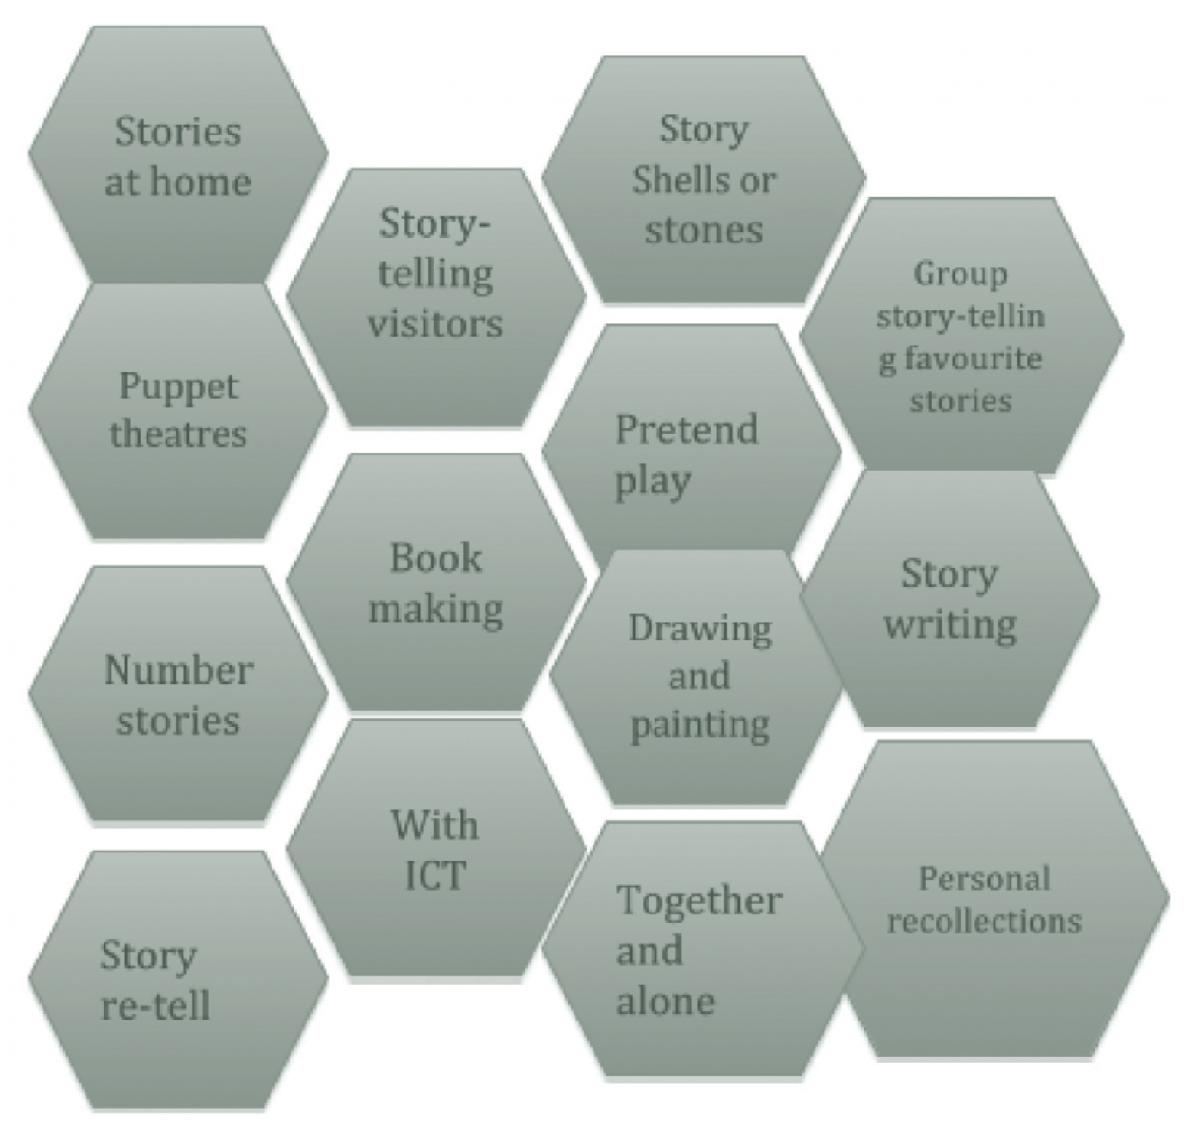 Patchwork words about different types of story-telling